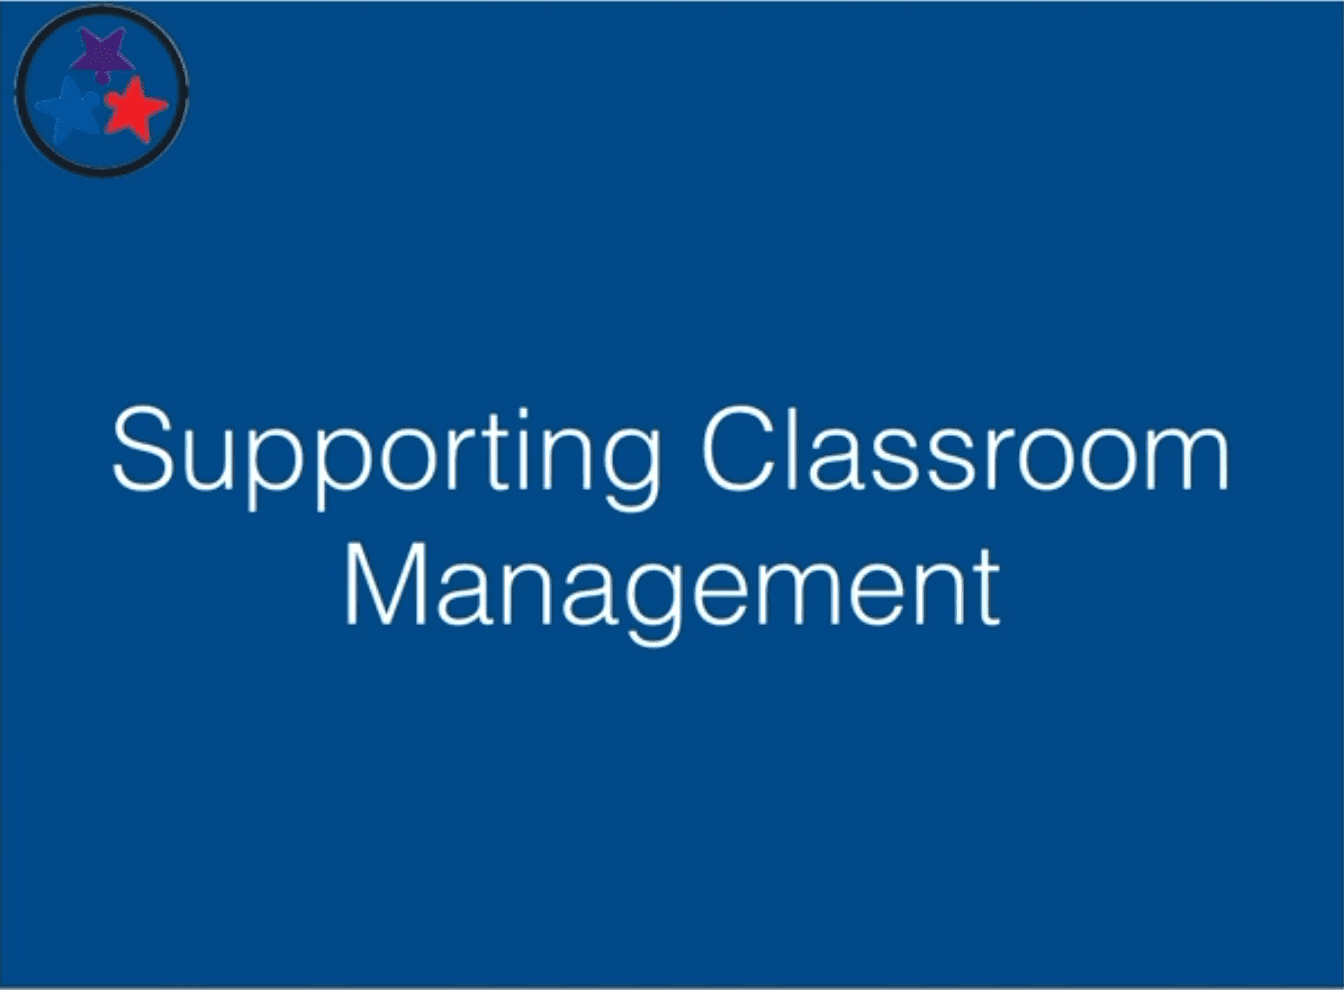 Classroom Management 2 - Supporting Classroom Management